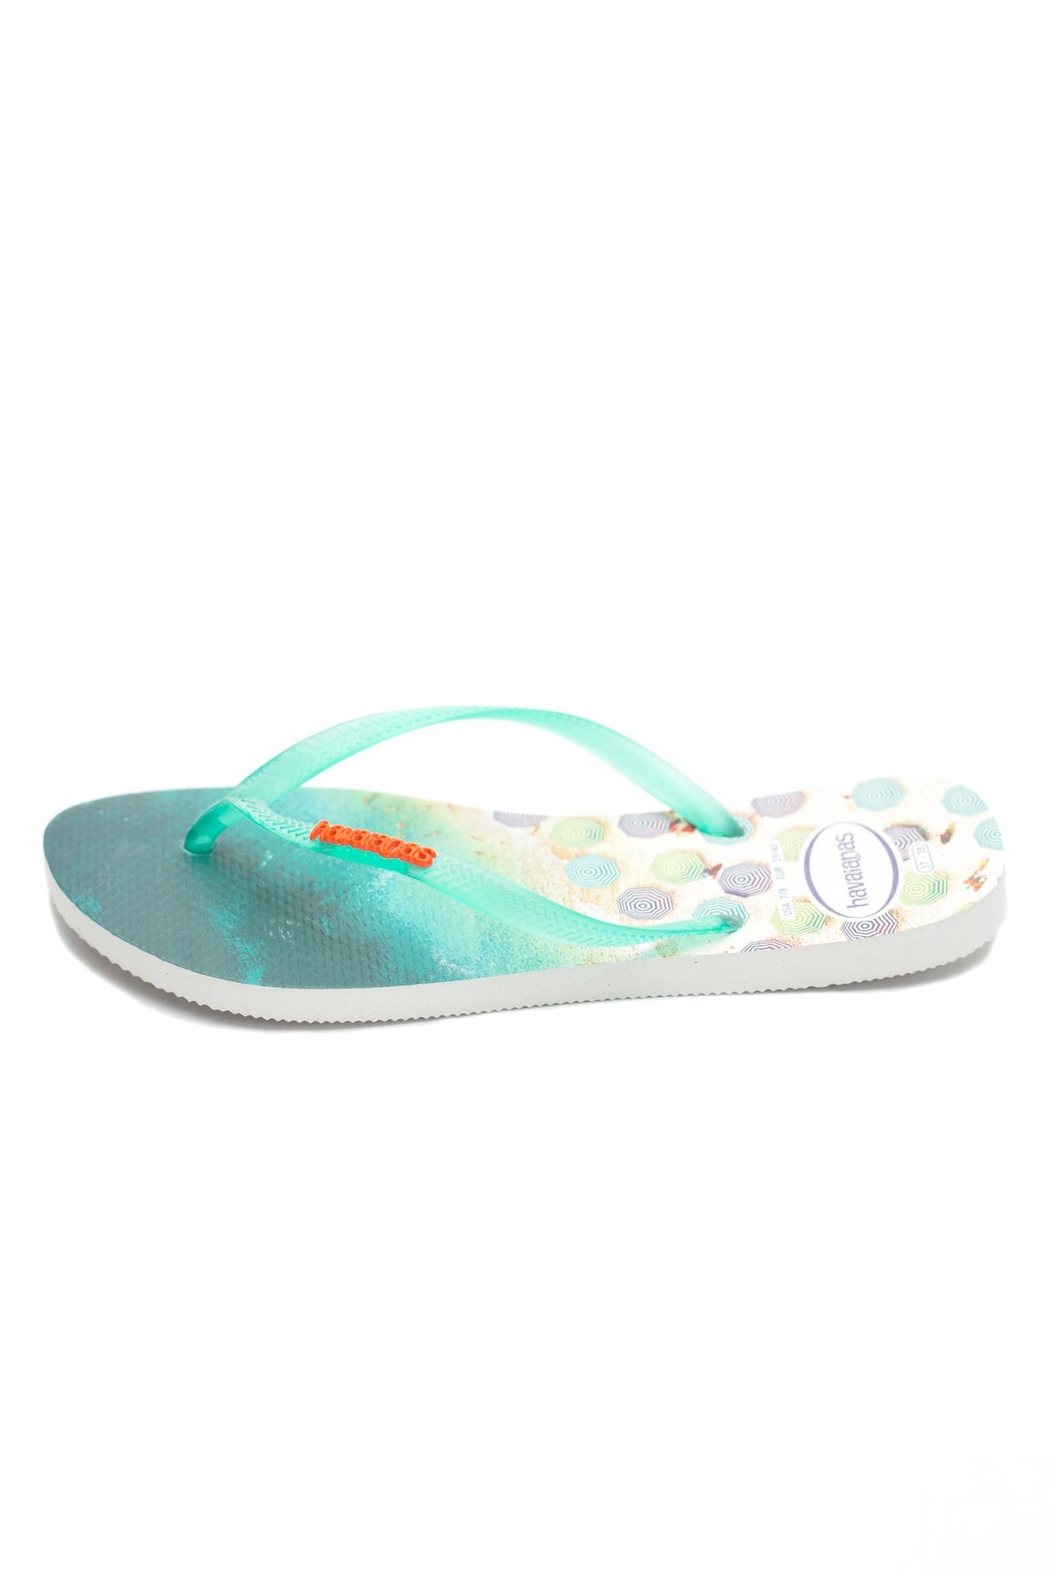 51477c246588e5 Havaianas Slim Paisage Sandal from Philadelphia by May 23 — Shoptiques